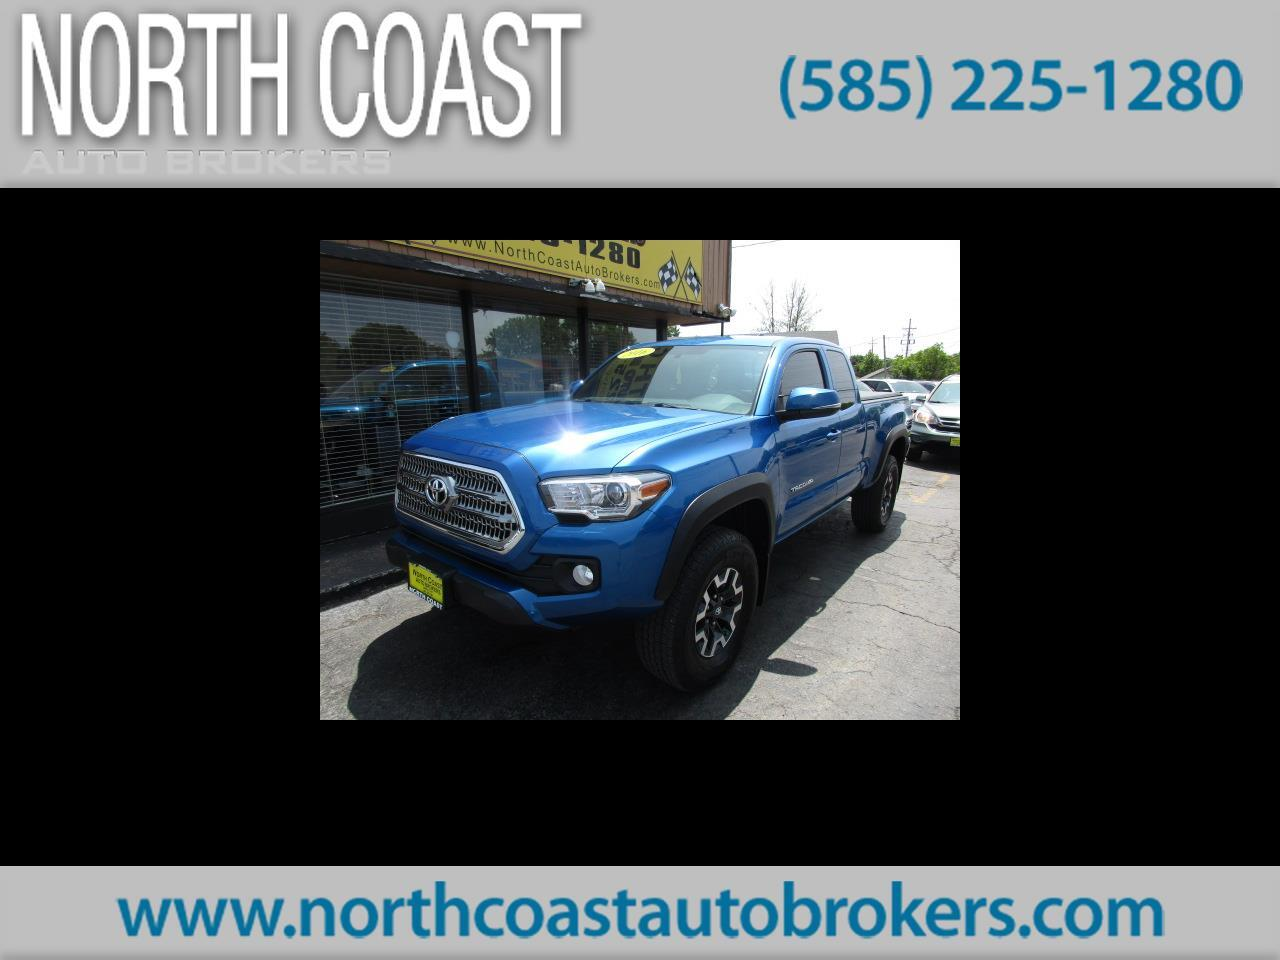 2016 Toyota Tacoma TRD Sport Access Cab 6' Bed V6 4x4 AT (Natl)